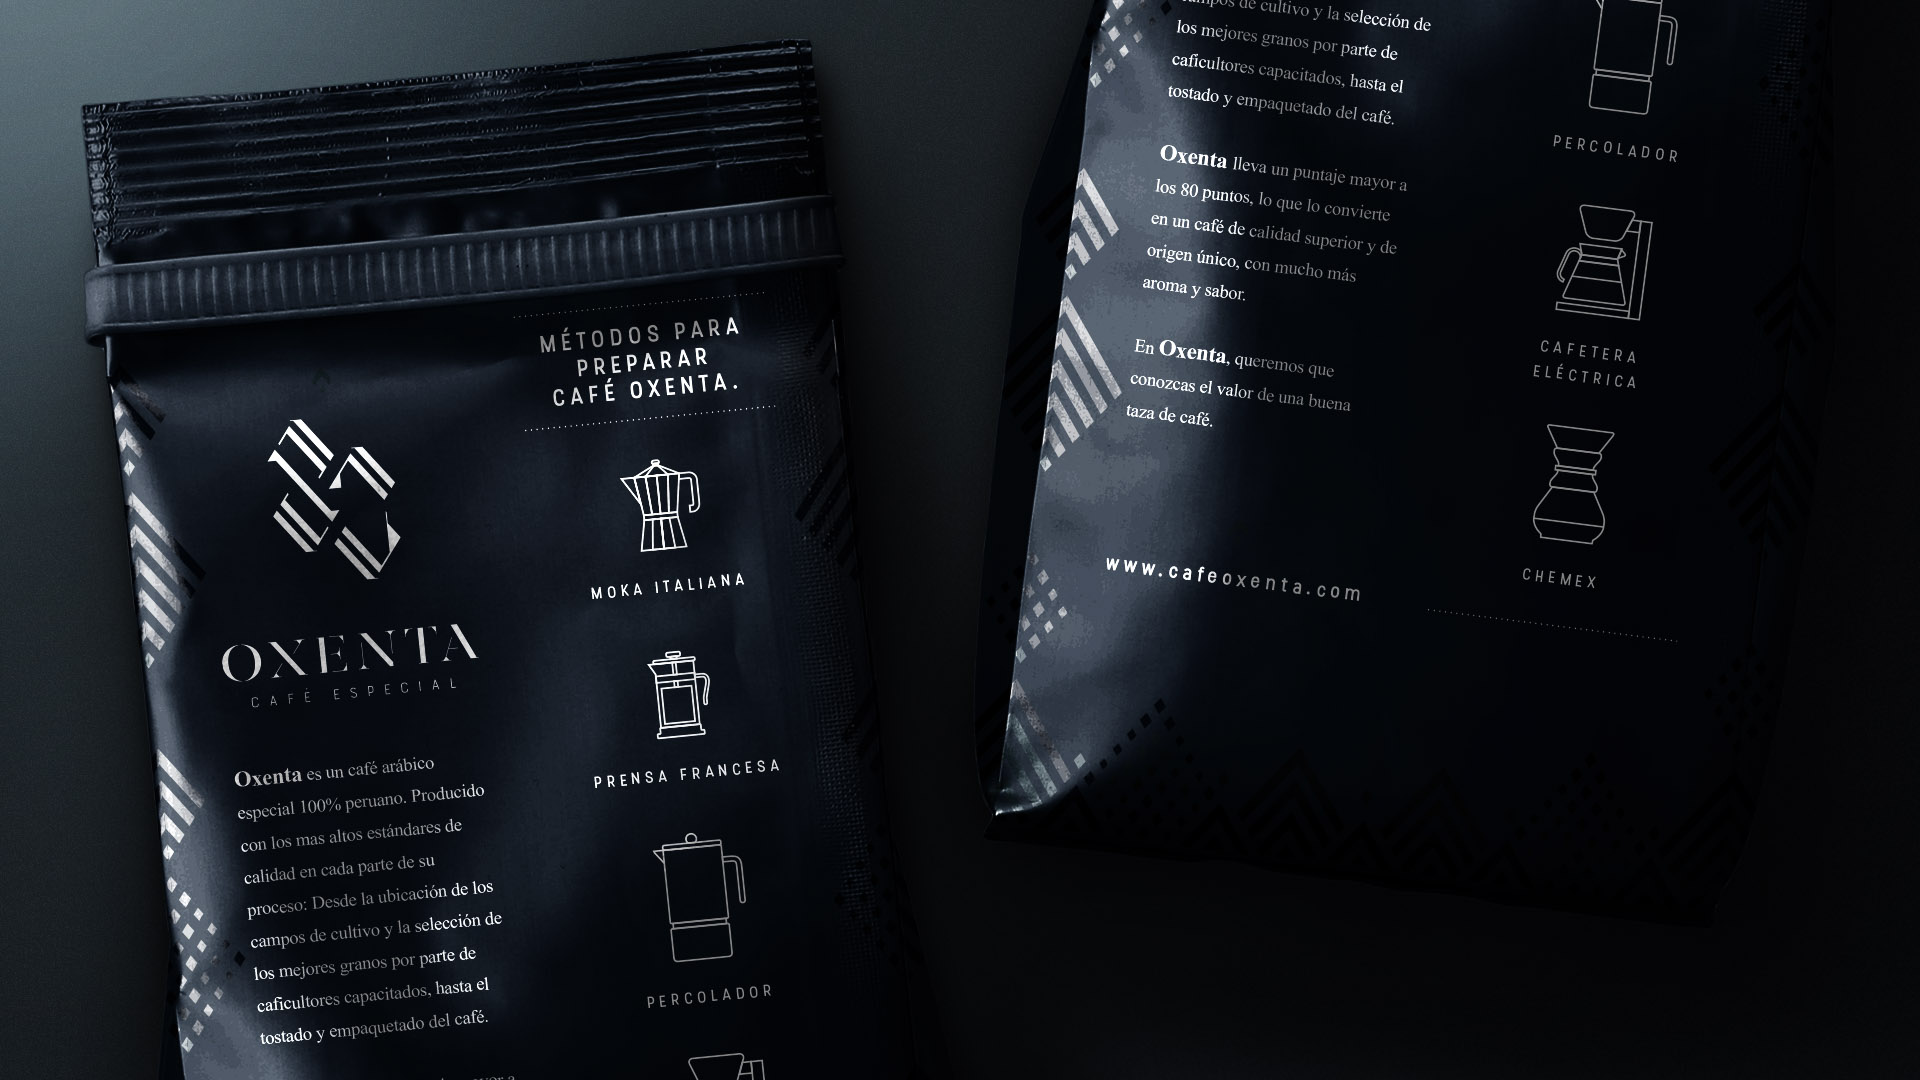 oxenta coffee bag7.jpg